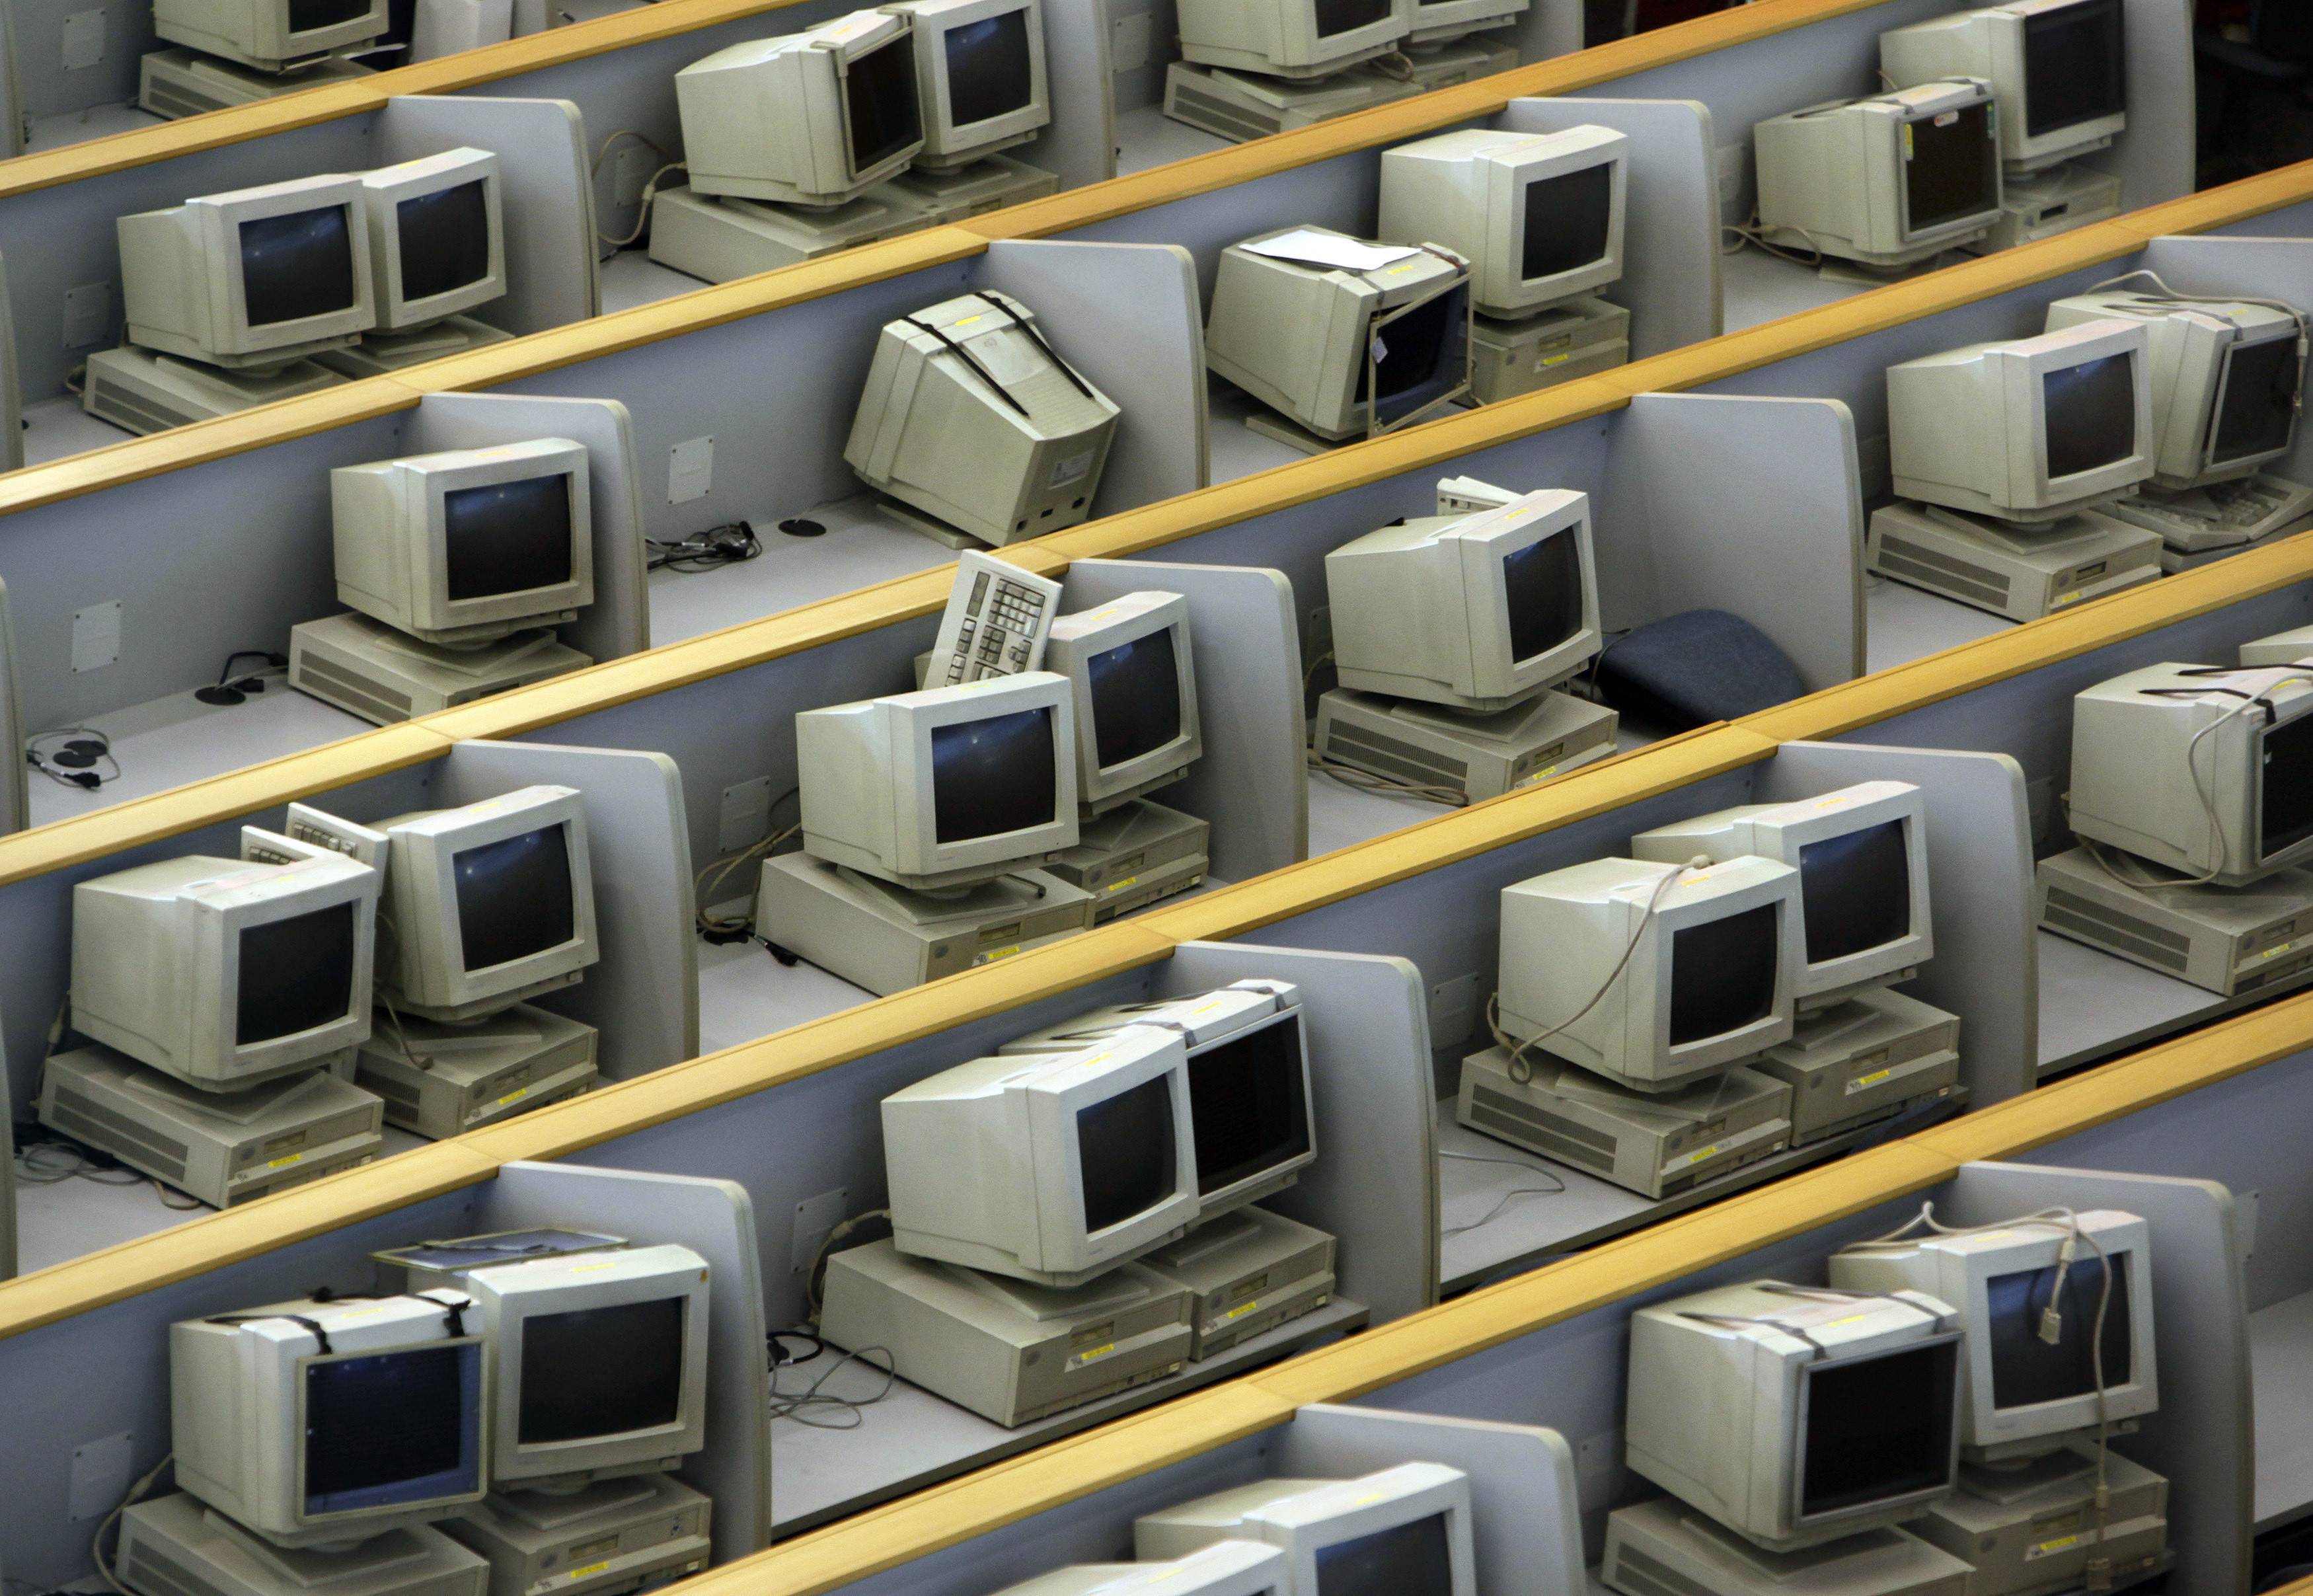 Old unused computers and monitors sit in the main hall of the Shanghai Stock Exchange August 18, 2009. China's stock market showed signs of stability on Tuesday morning after tumbling 5.8 percent on Monday, its biggest daily percentage drop in nine months, hit mainly by profit-taking after a 90-percent stock market rally earlier this year got far ahead of China's economic recovery.  REUTERS/Nir Elias (CHINA BUSINESS) - GM1E58I0XW201